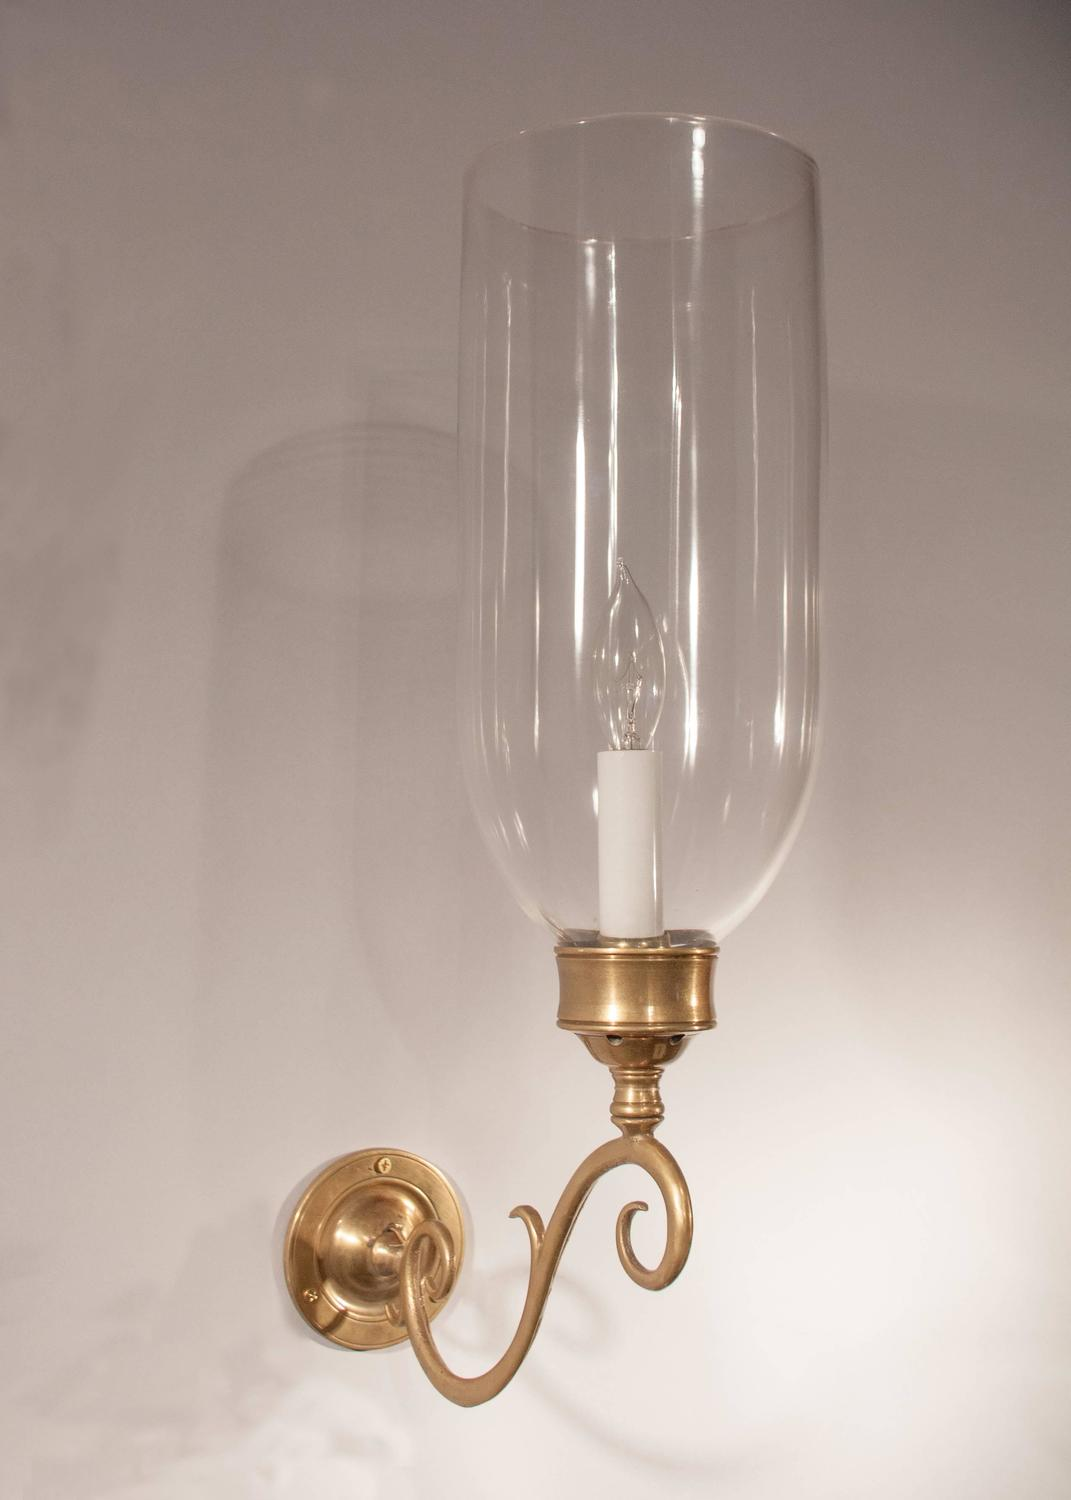 Hurricane Wall Light : Pair of 19th Century English Hurricane Wall Sconces at 1stdibs